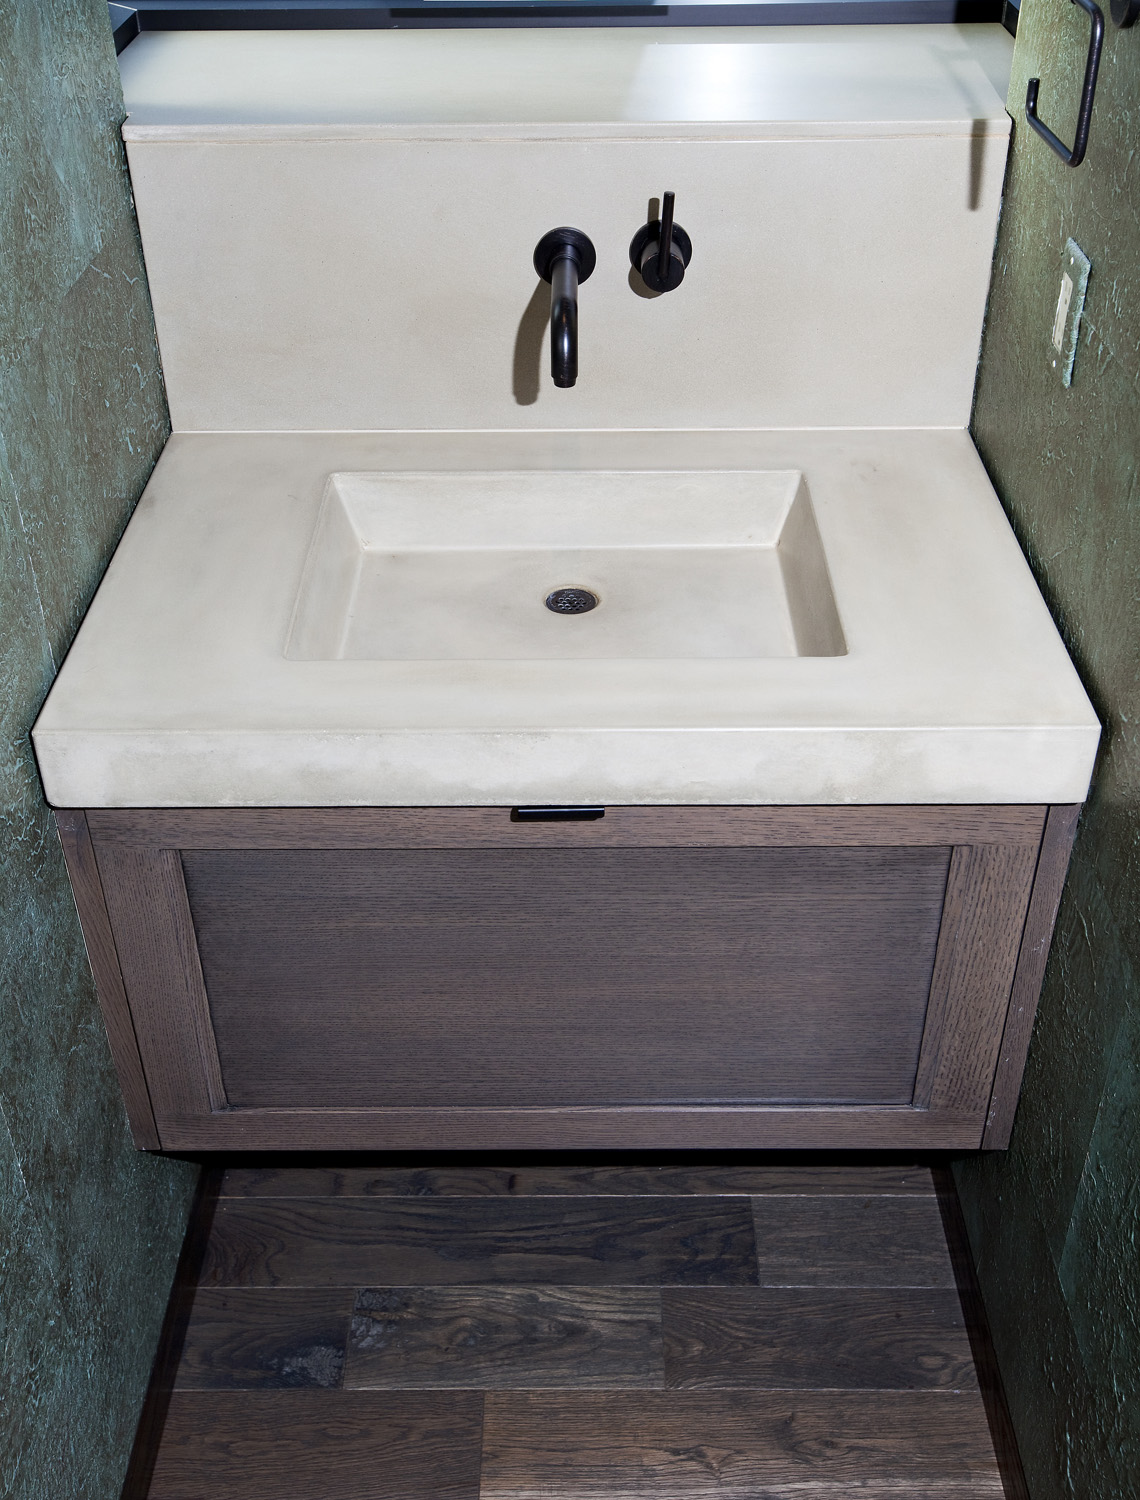 GH_bathroom_sink (2).jpg